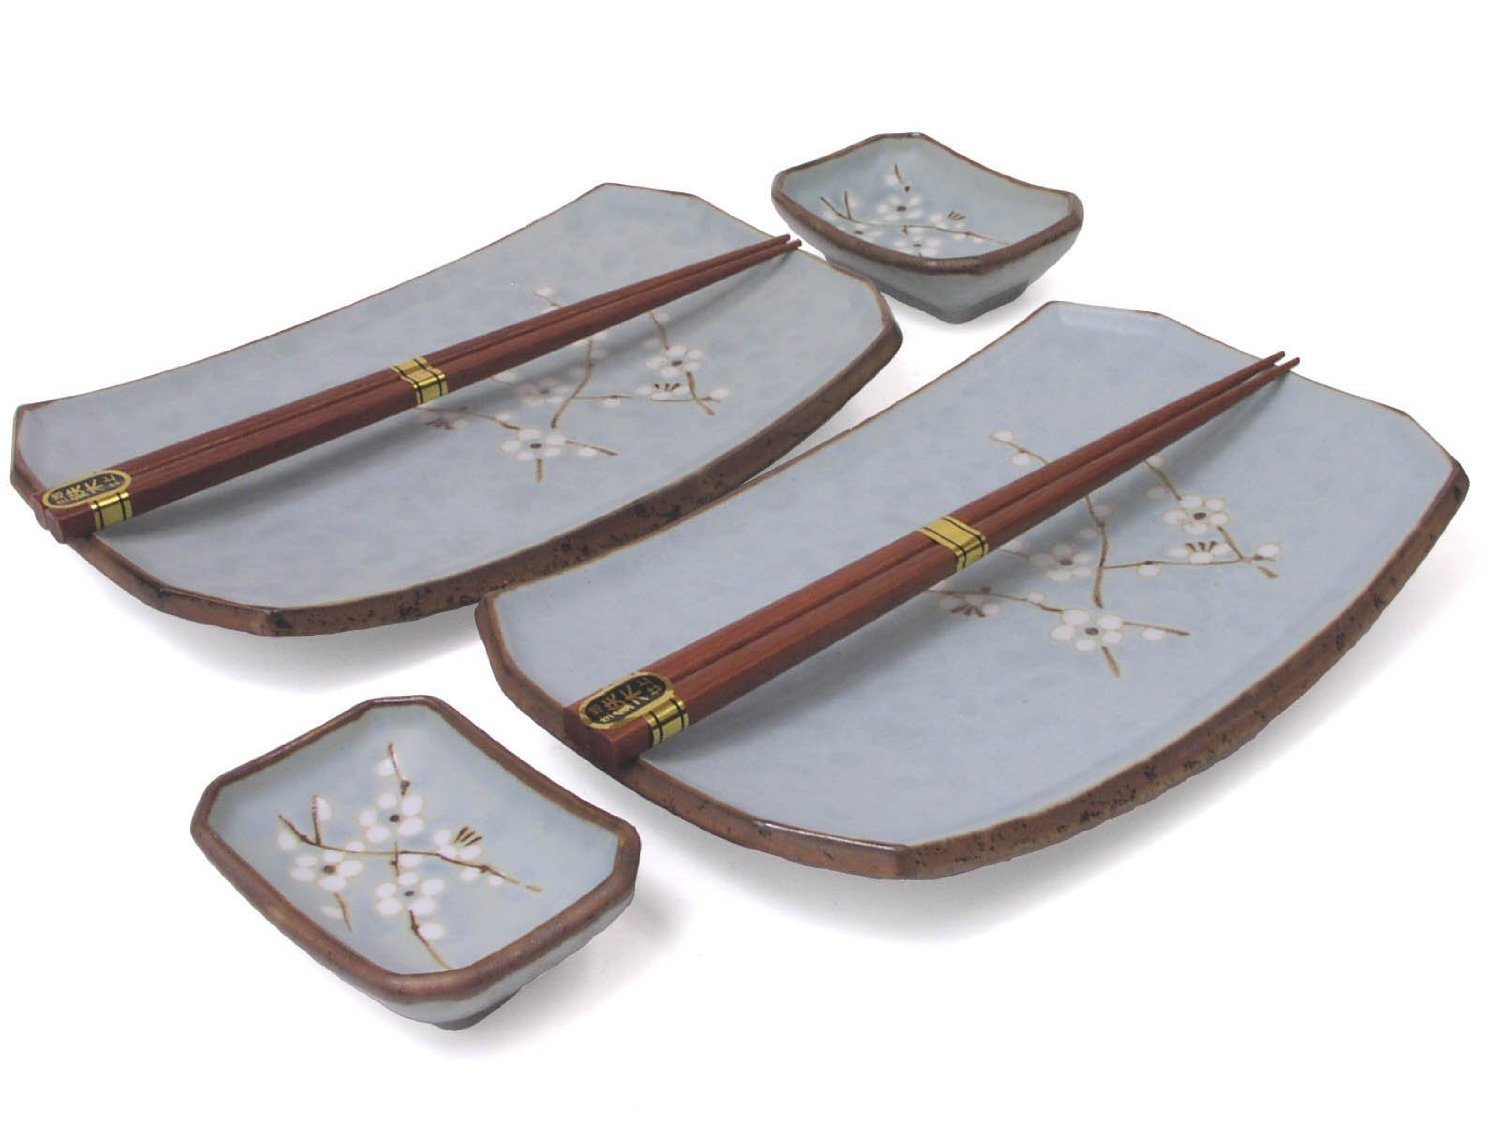 Amazon.com Happy Sales Happy Sales 6 pc Japanese Sushi Plate Dinnerware set Cherry Blossom Blue Light Blue Sushi Making Kit Kitchen u0026 Dining  sc 1 st  Amazon.com & Amazon.com: Happy Sales Happy Sales 6 pc Japanese Sushi Plate ...